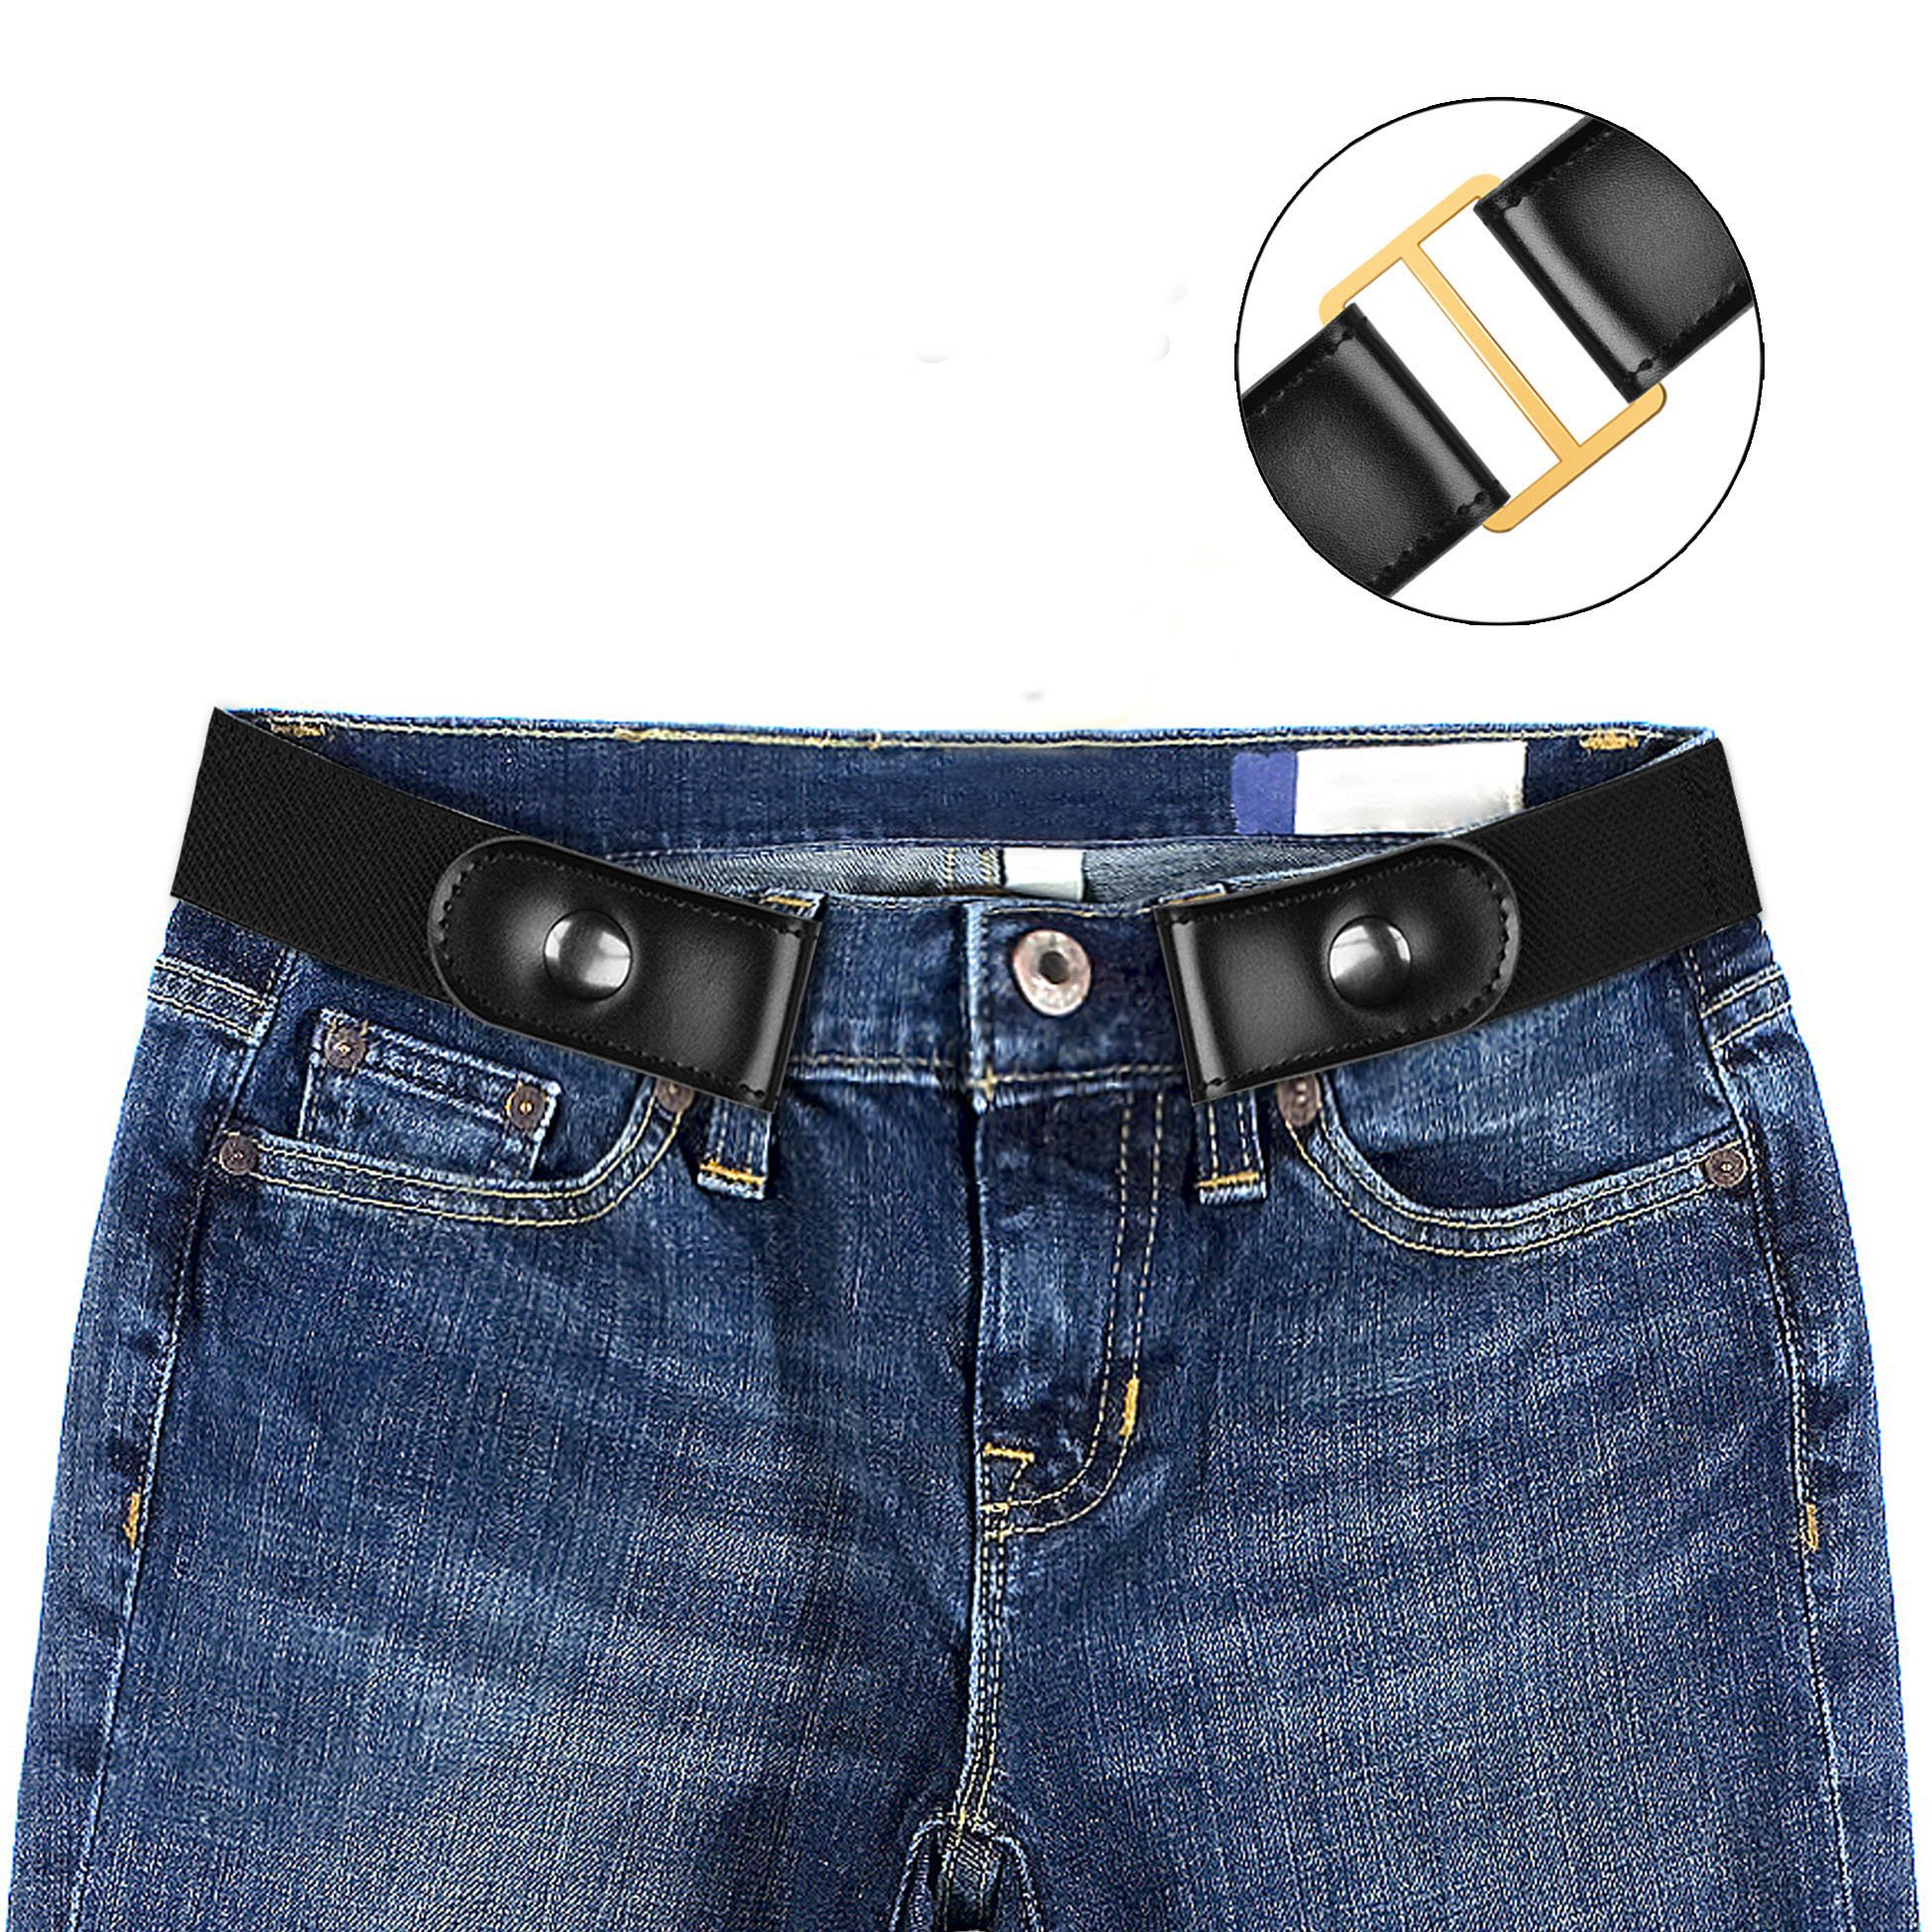 Buckle-free Elastic Women Belt for Jeans without Buckle, Dimi Comfortable Invisible Belt No Bulge No Hassle,L